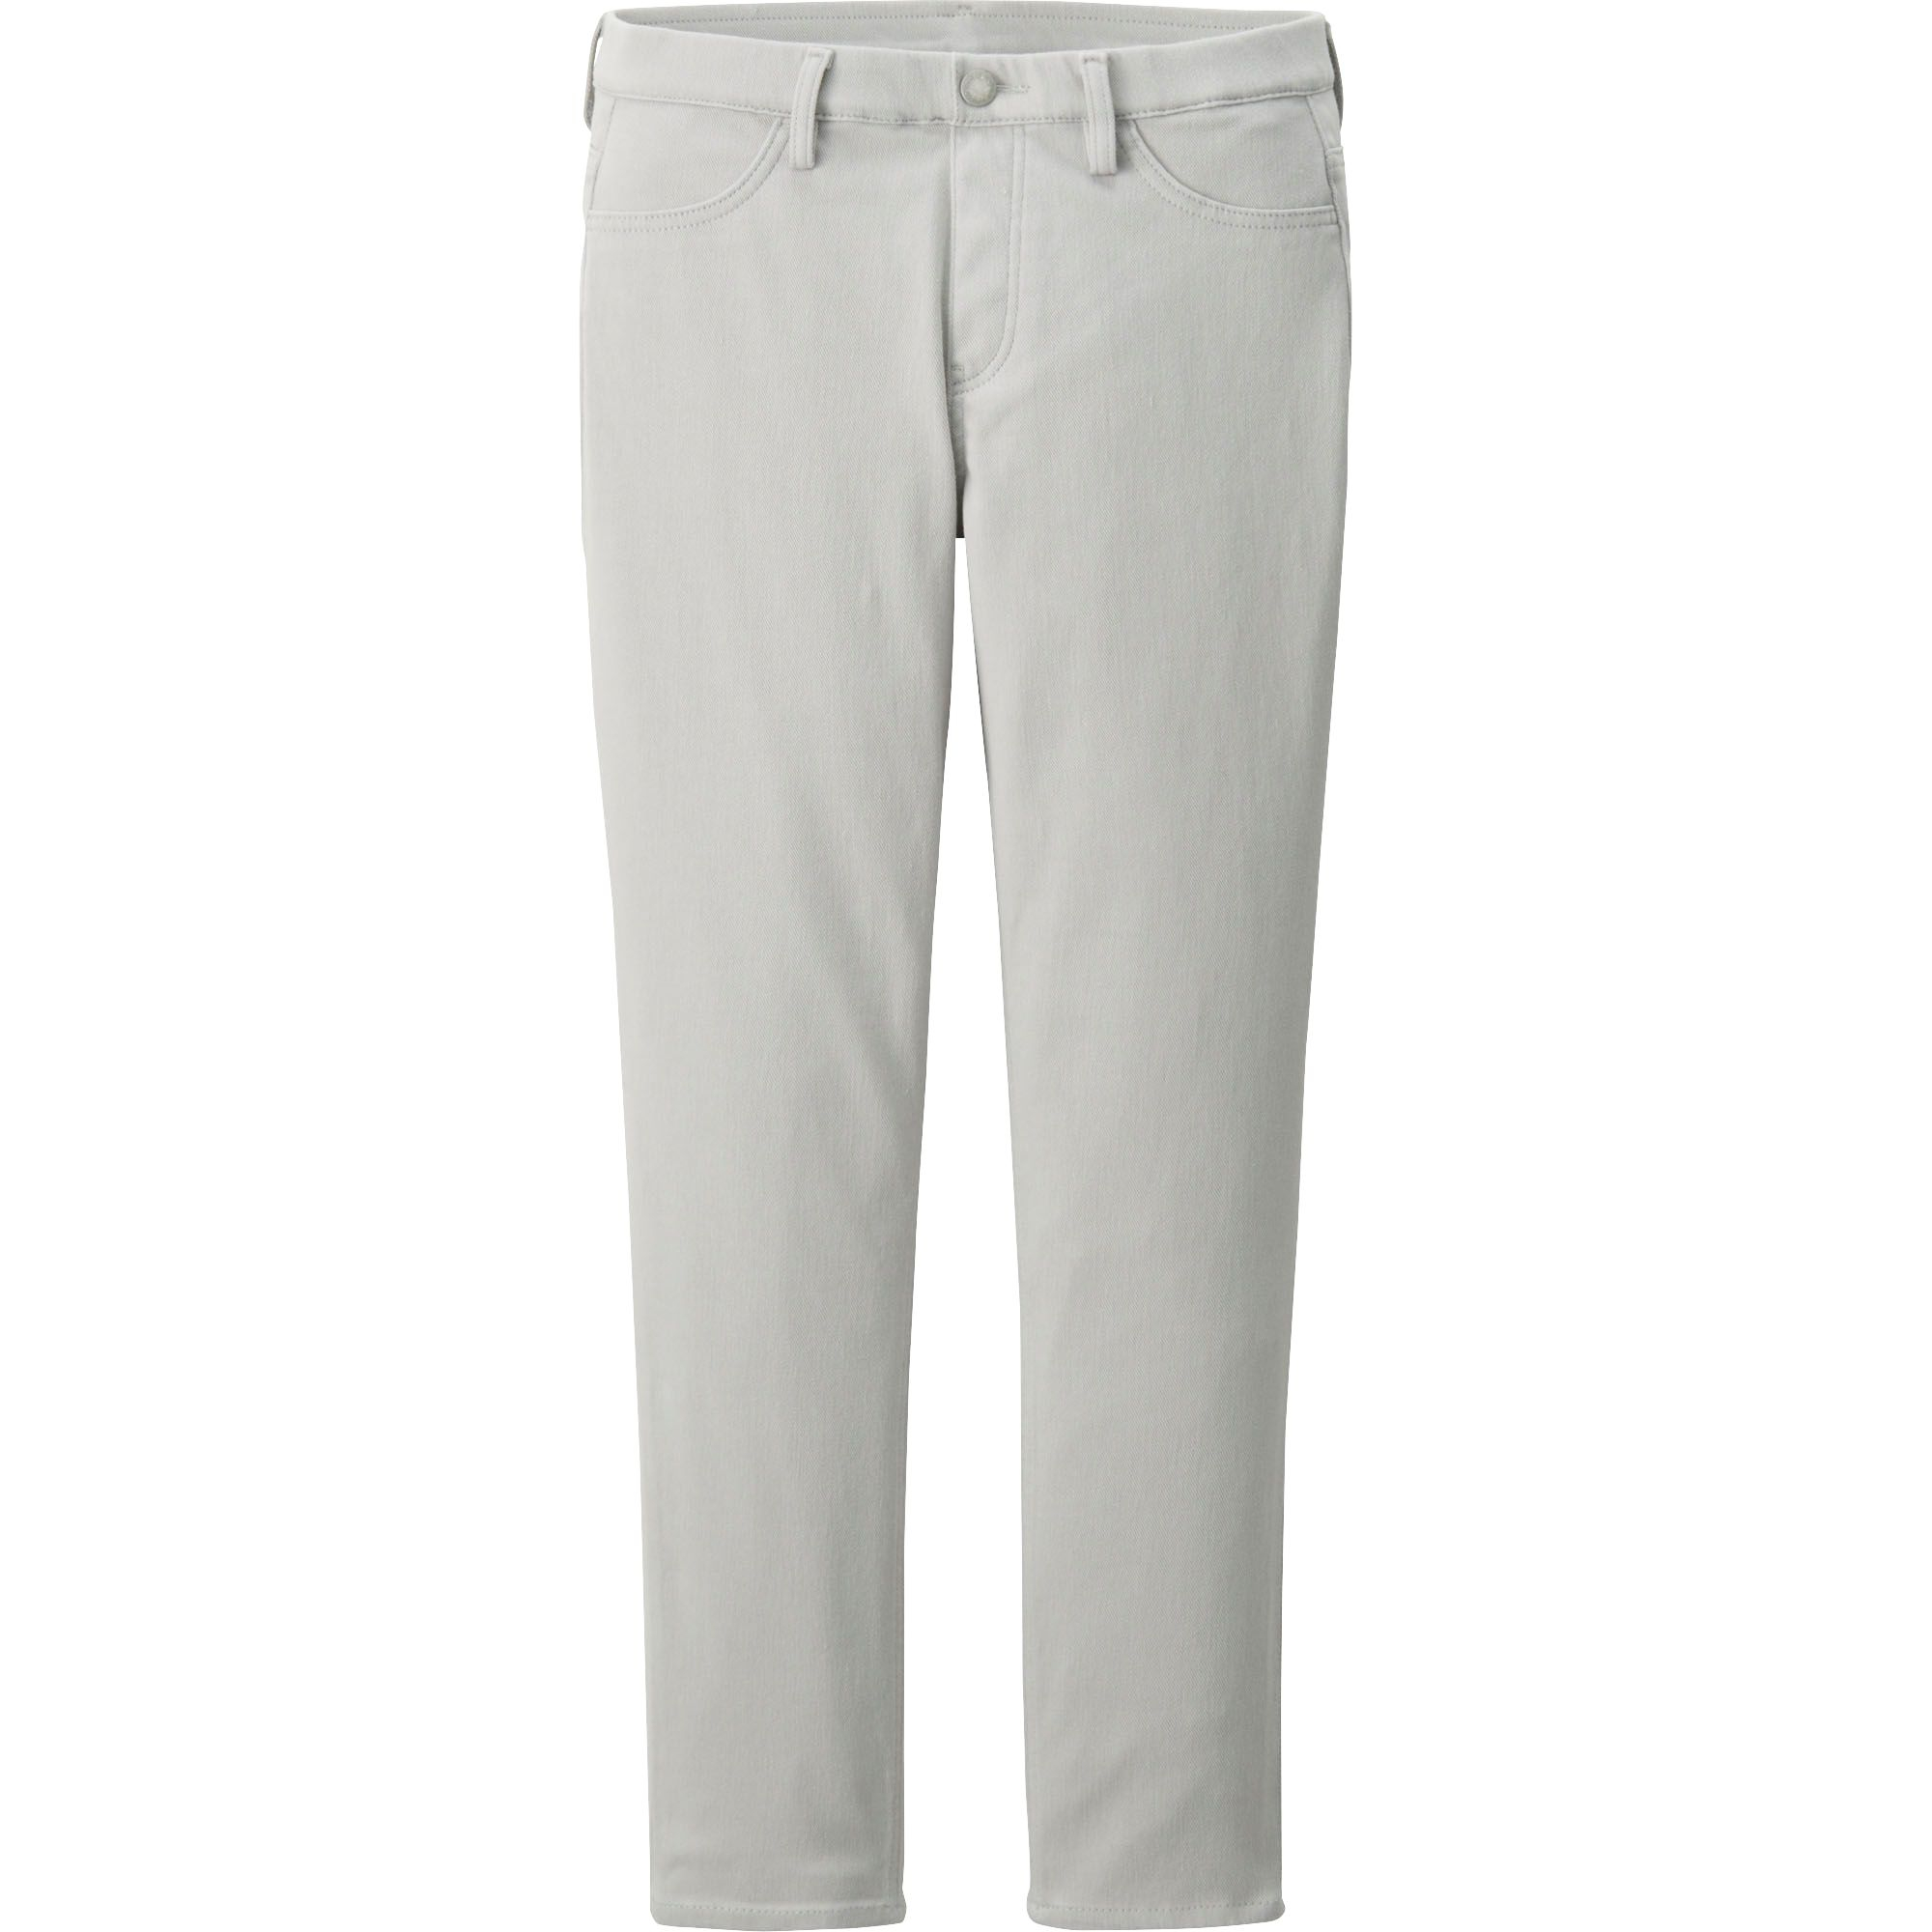 Awesome WOMEN Stretch Cropped Pants | UNIQLO